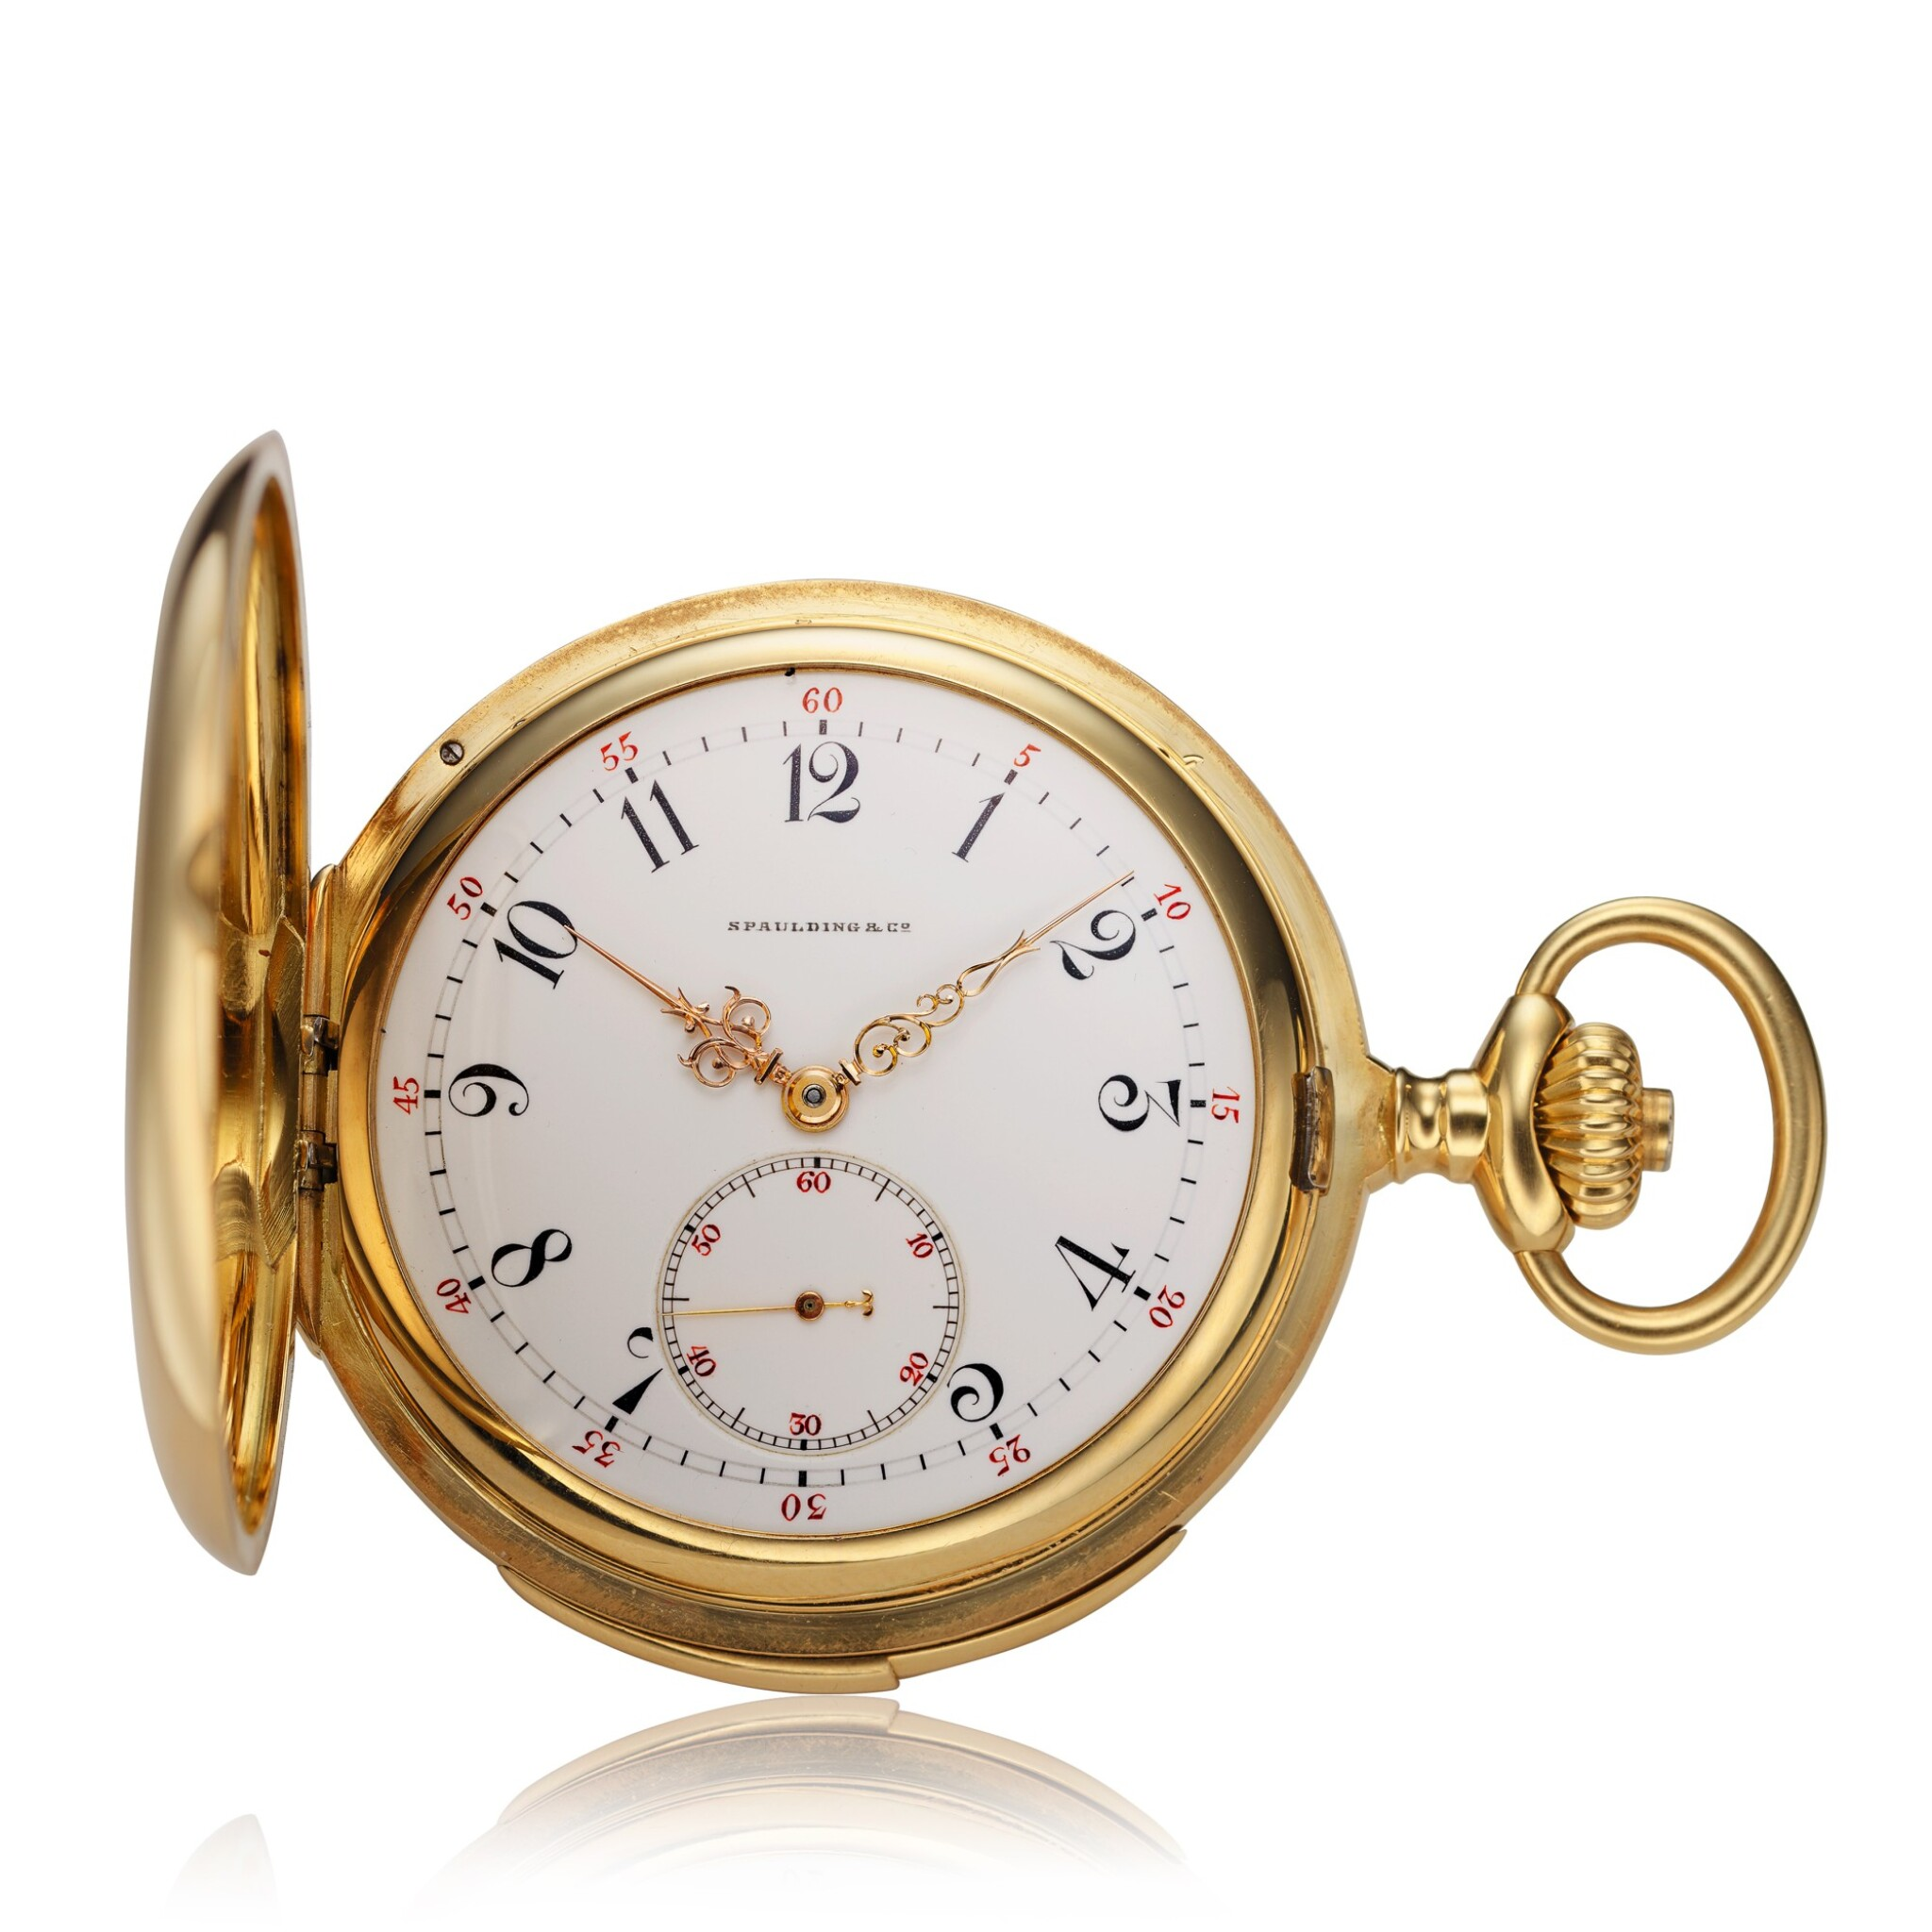 View full screen - View 1 of Lot 98. Retailed By Spaulding & Co.: A yellow gold minute repeating hunting cased watch, Made in 1903.